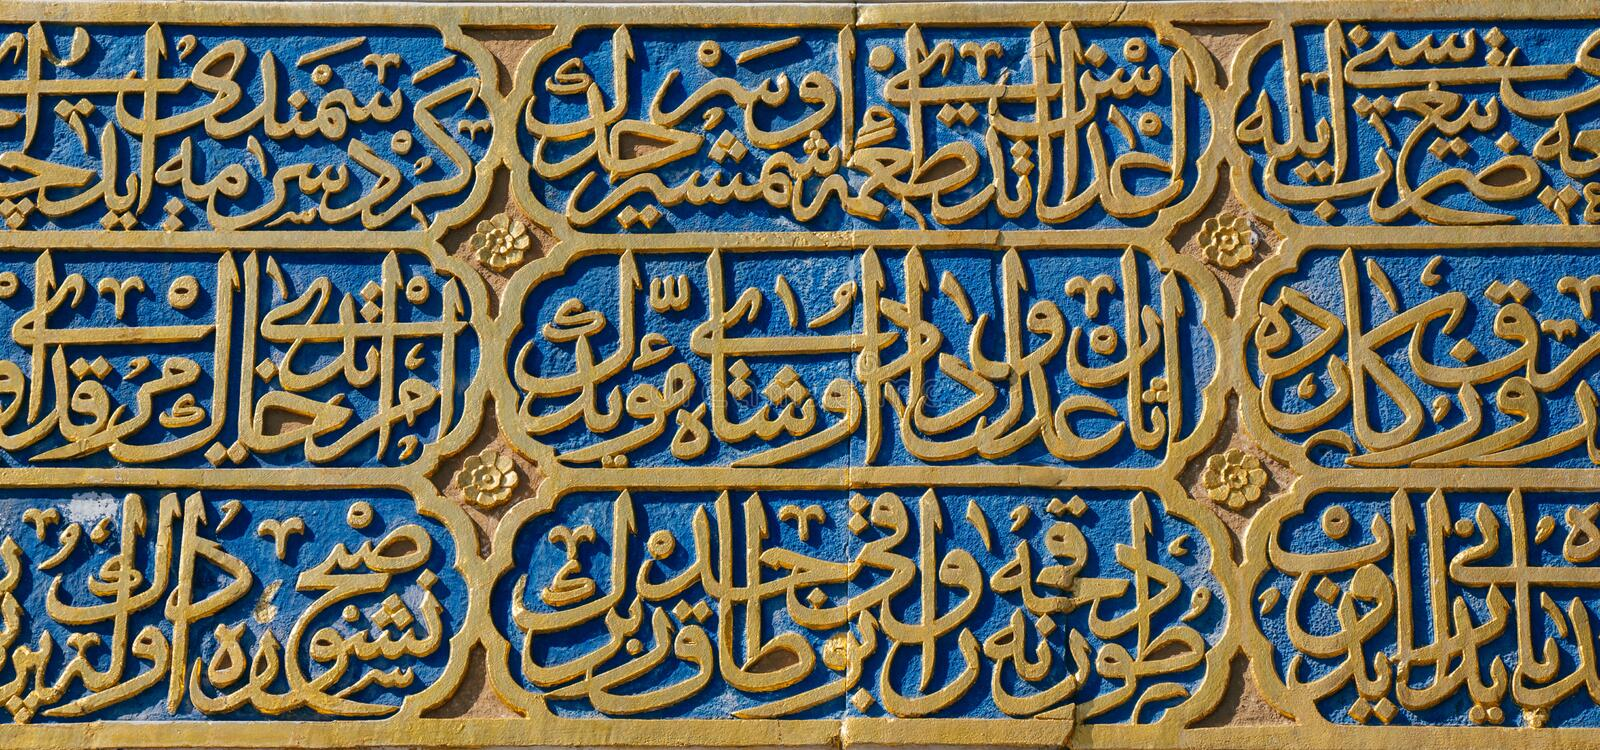 Beautiful examples of Ottoman Calligraphy art royalty free stock photography